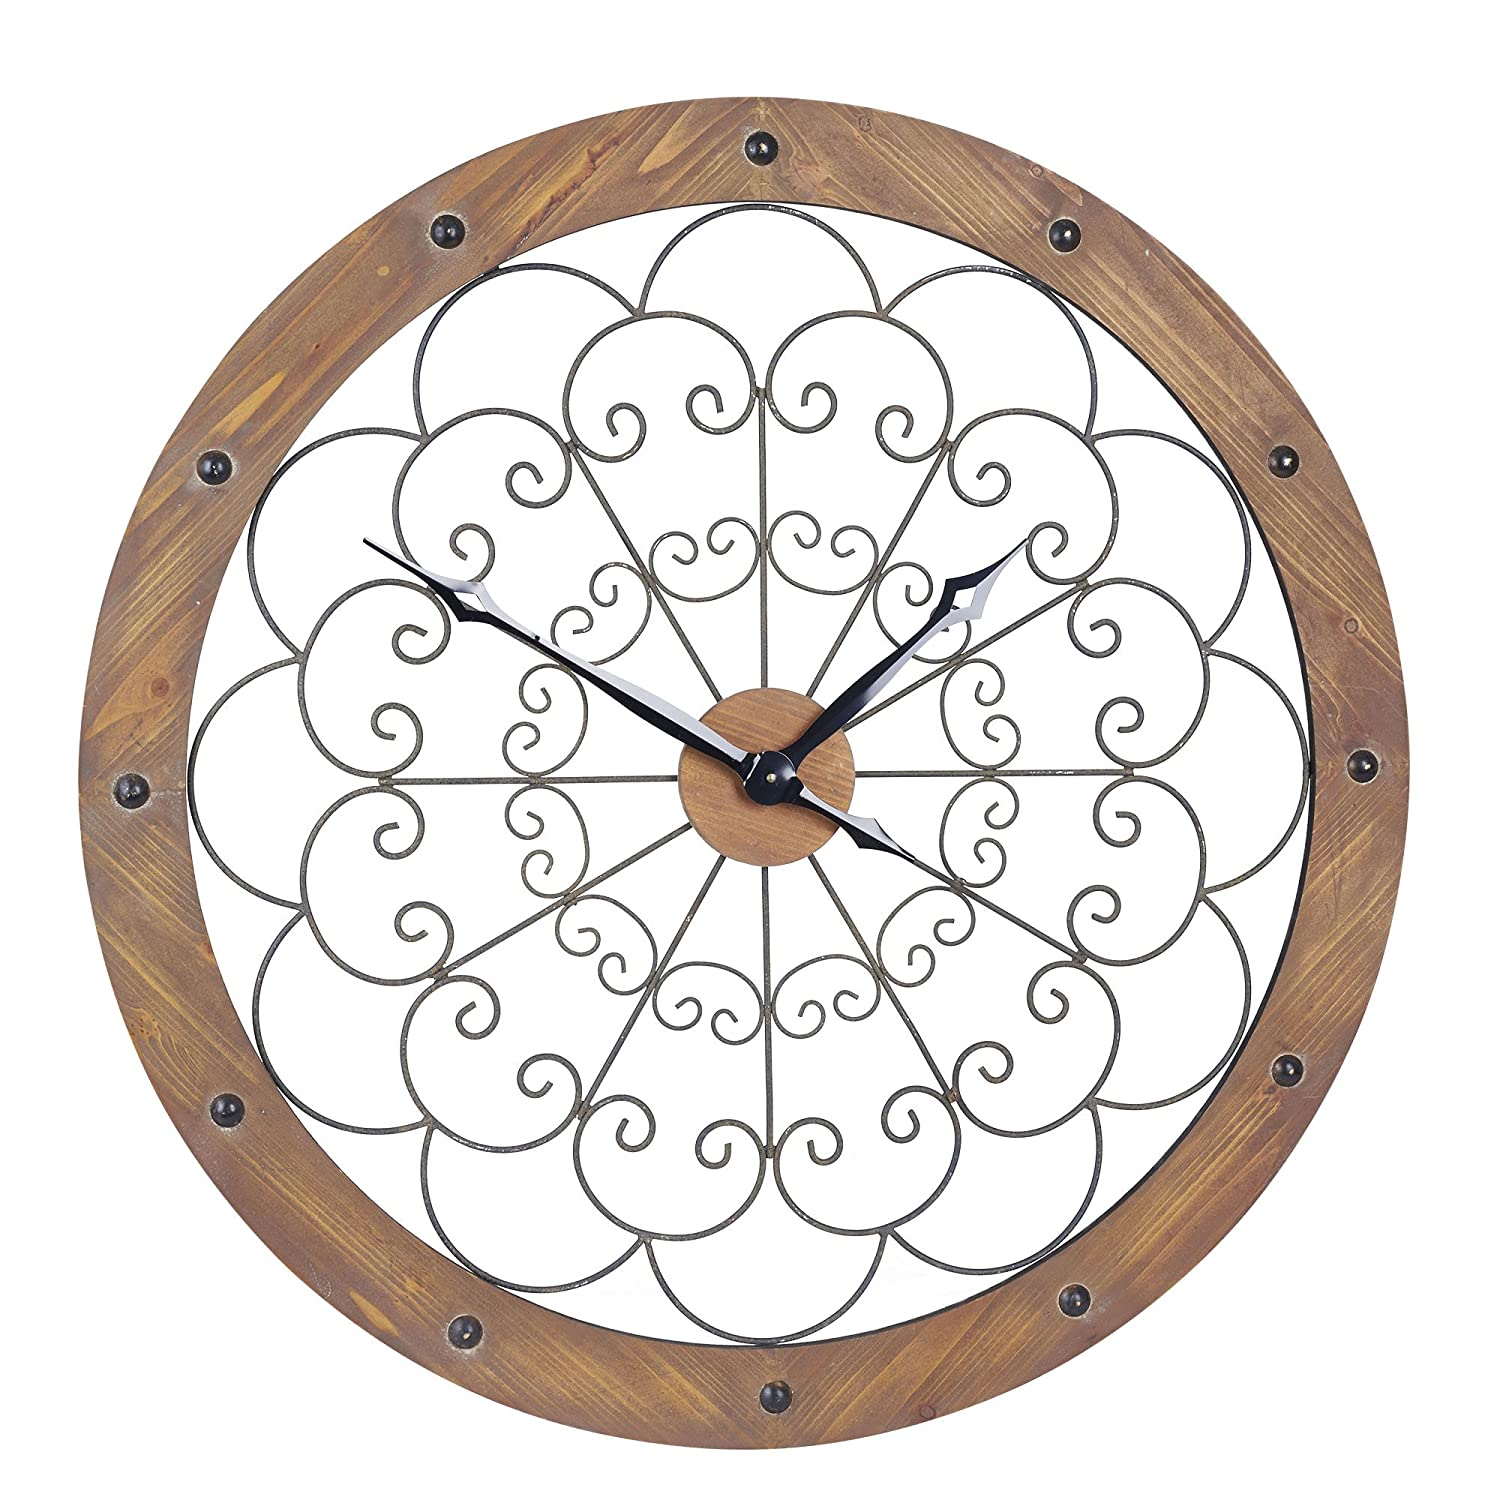 Amazon household essentials large oversized decorative rustic amazon household essentials large oversized decorative rustic wall clock brown wood black metal home kitchen amipublicfo Gallery